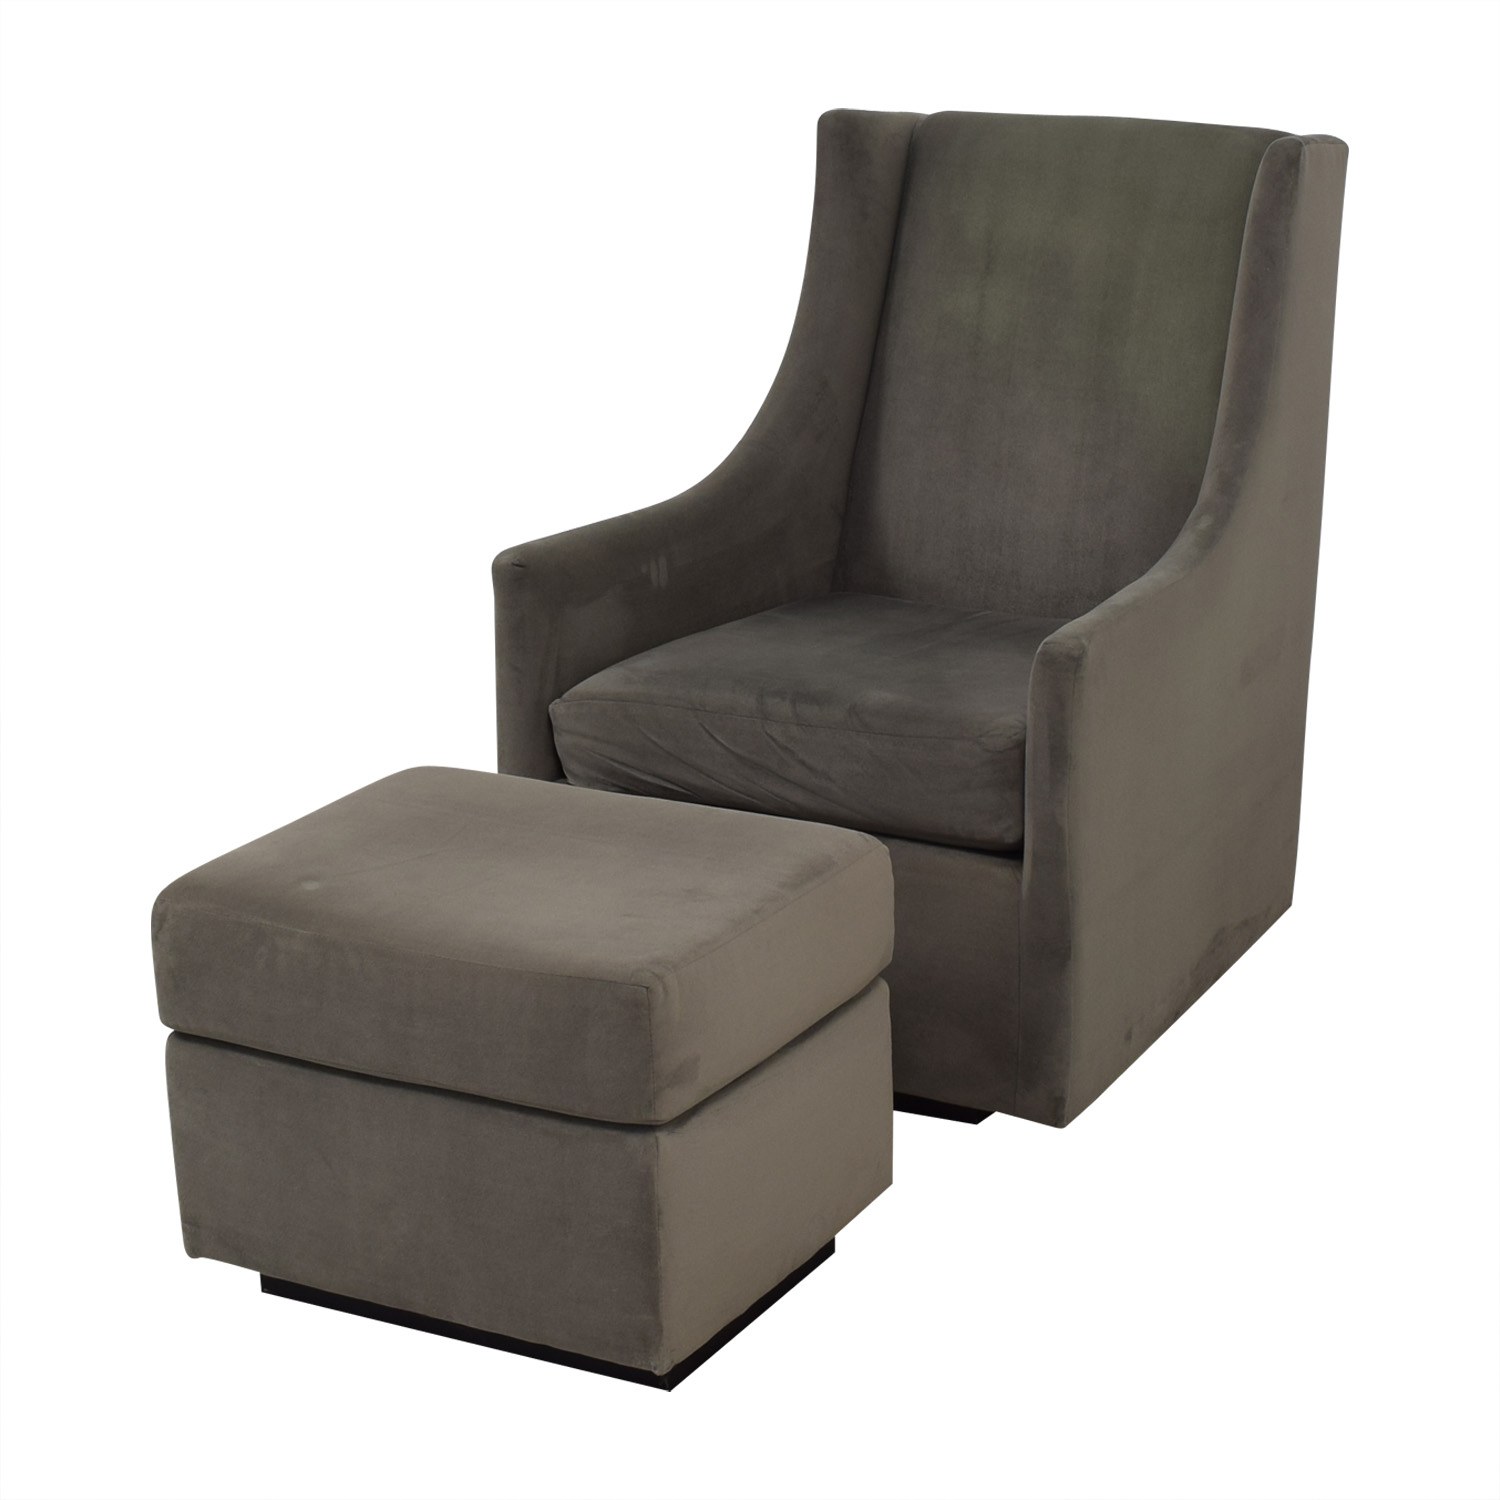 Outstanding 59 Off West Elm West Elm Graham Glider With Ottoman Chairs Pabps2019 Chair Design Images Pabps2019Com